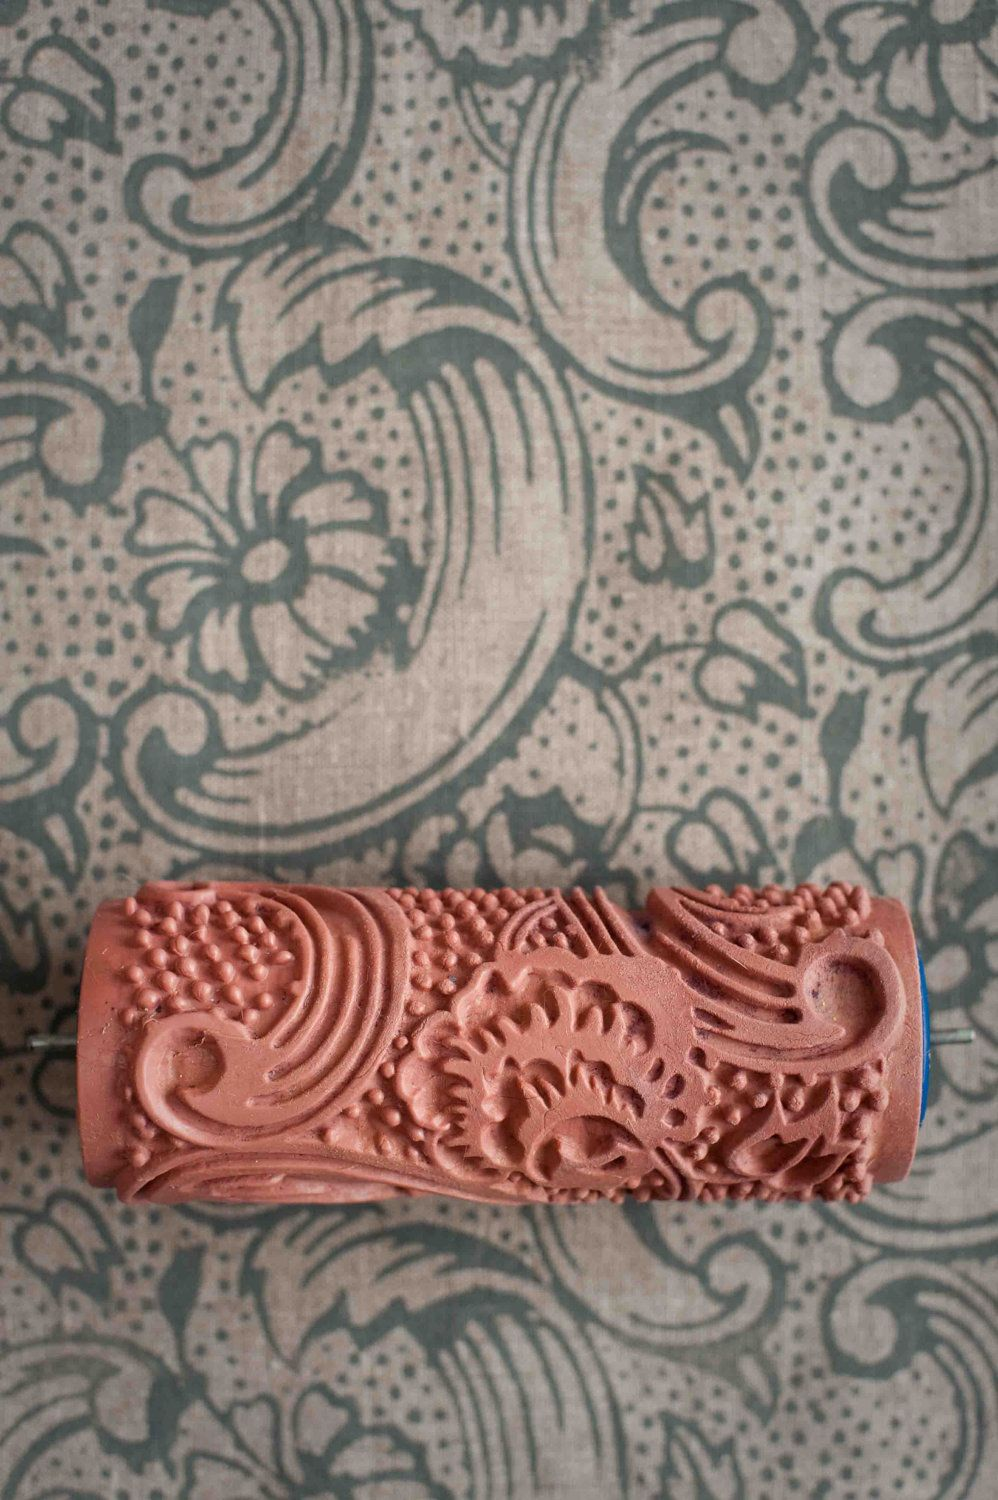 No 7 Patterned Paint Roller From The Painted House Keramik Monster Tval